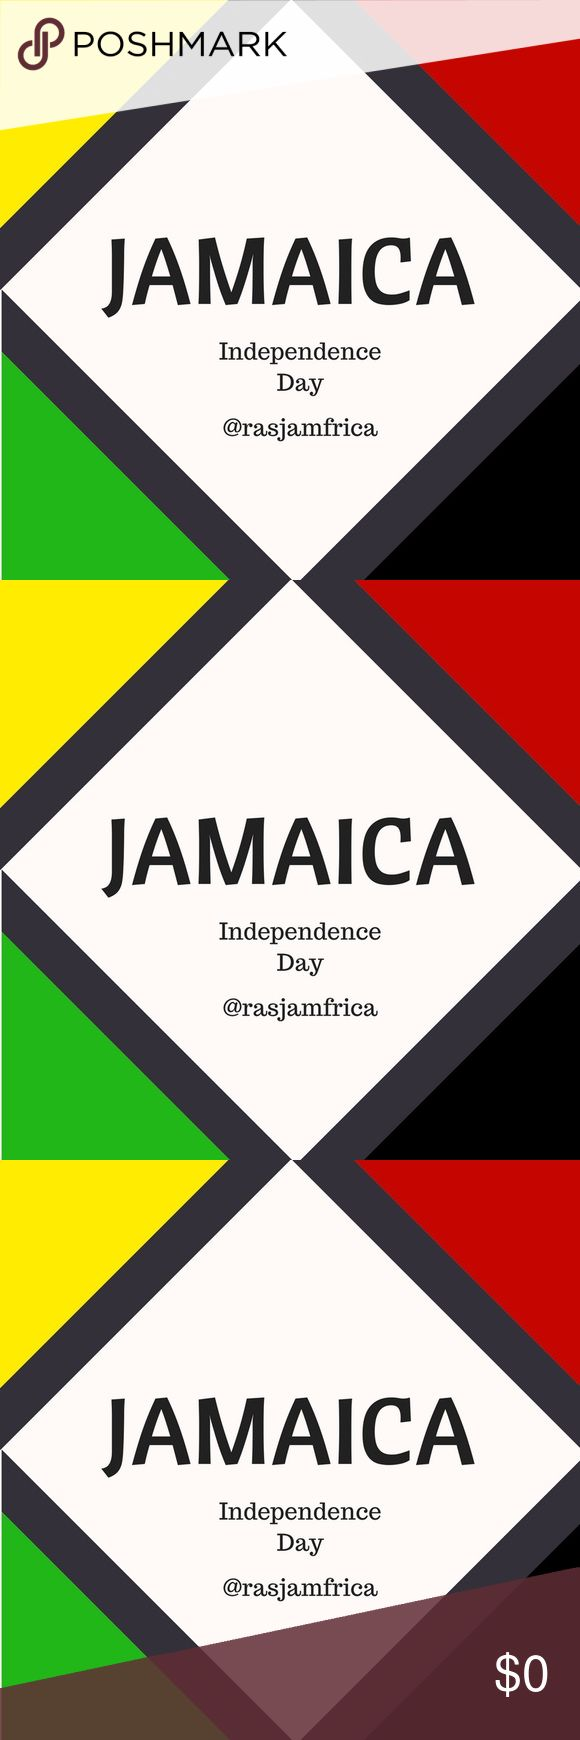 JAMAICA 🇯🇲 Independence Day 🇯🇲 JAMAICA 🇯🇲 Independence Day!  Wear yuh colors on August 6th!! Show your support on Independence Day! Wear clothing of Jamaican flag 🇯🇲 Dresses...T-Shirts...Hats...Bracelet... Earrings...Bags...Accessories!! Share the LOVE!!💚❤️💛🖤 Jamaica Independence Day Accessories